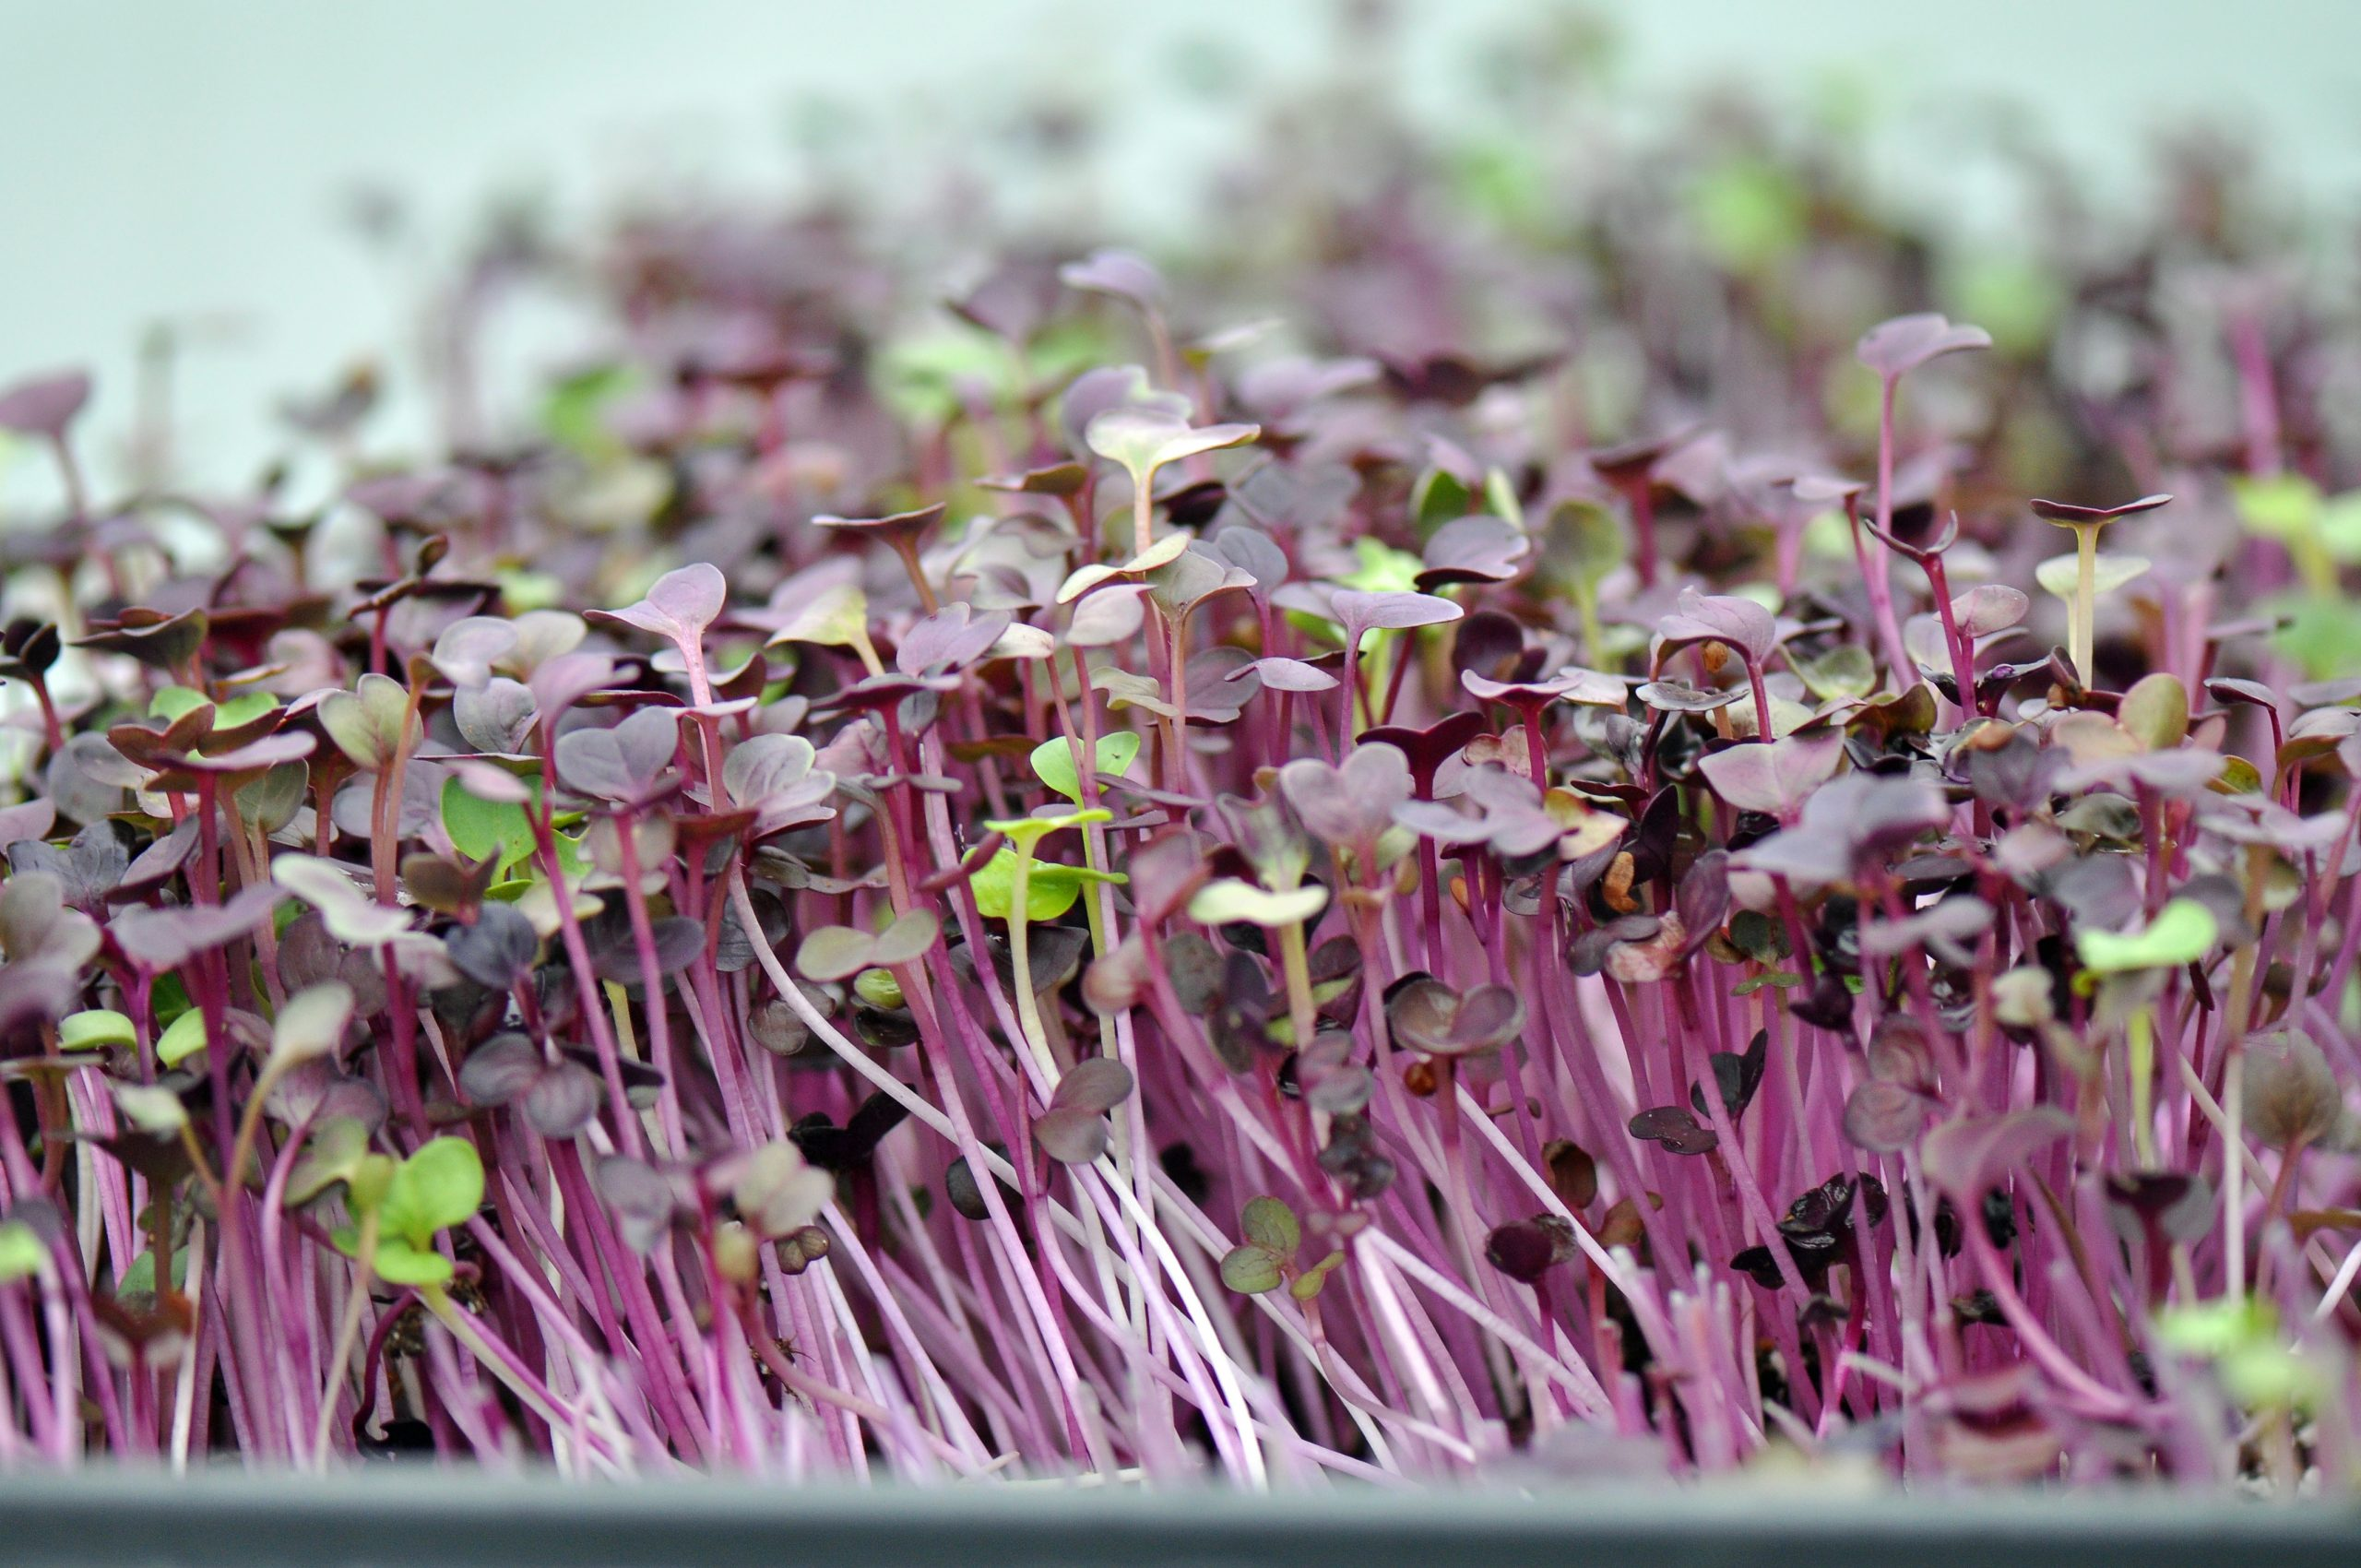 Microgreens and Sprouts are so good for your thyroid and nutrition. They are amazing on everything you eat. Check it out at jenbaucom.com